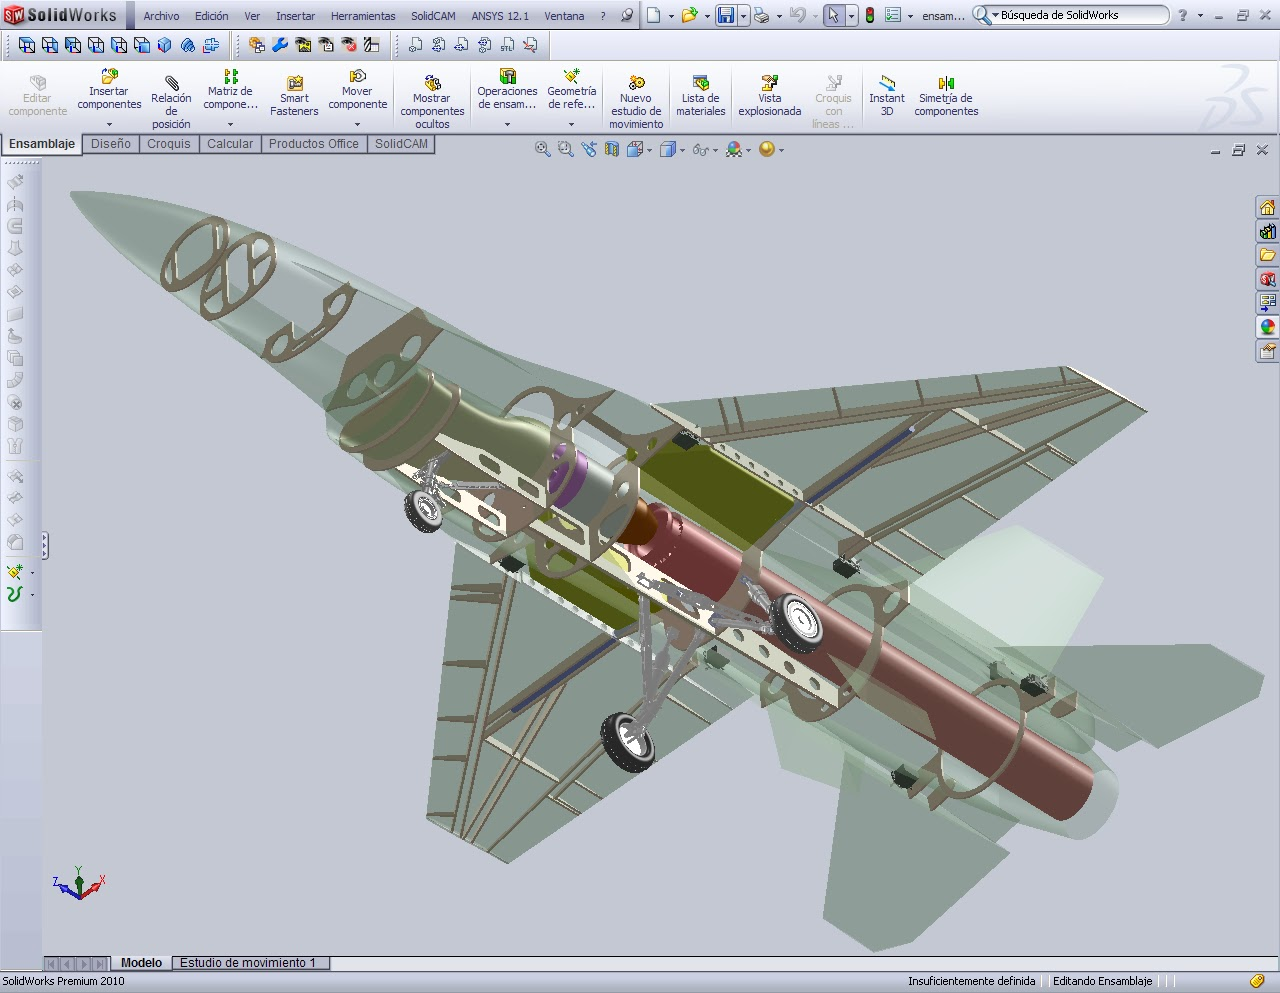 F 16 model scl 1 5th solidworks design for Design table not working solidworks